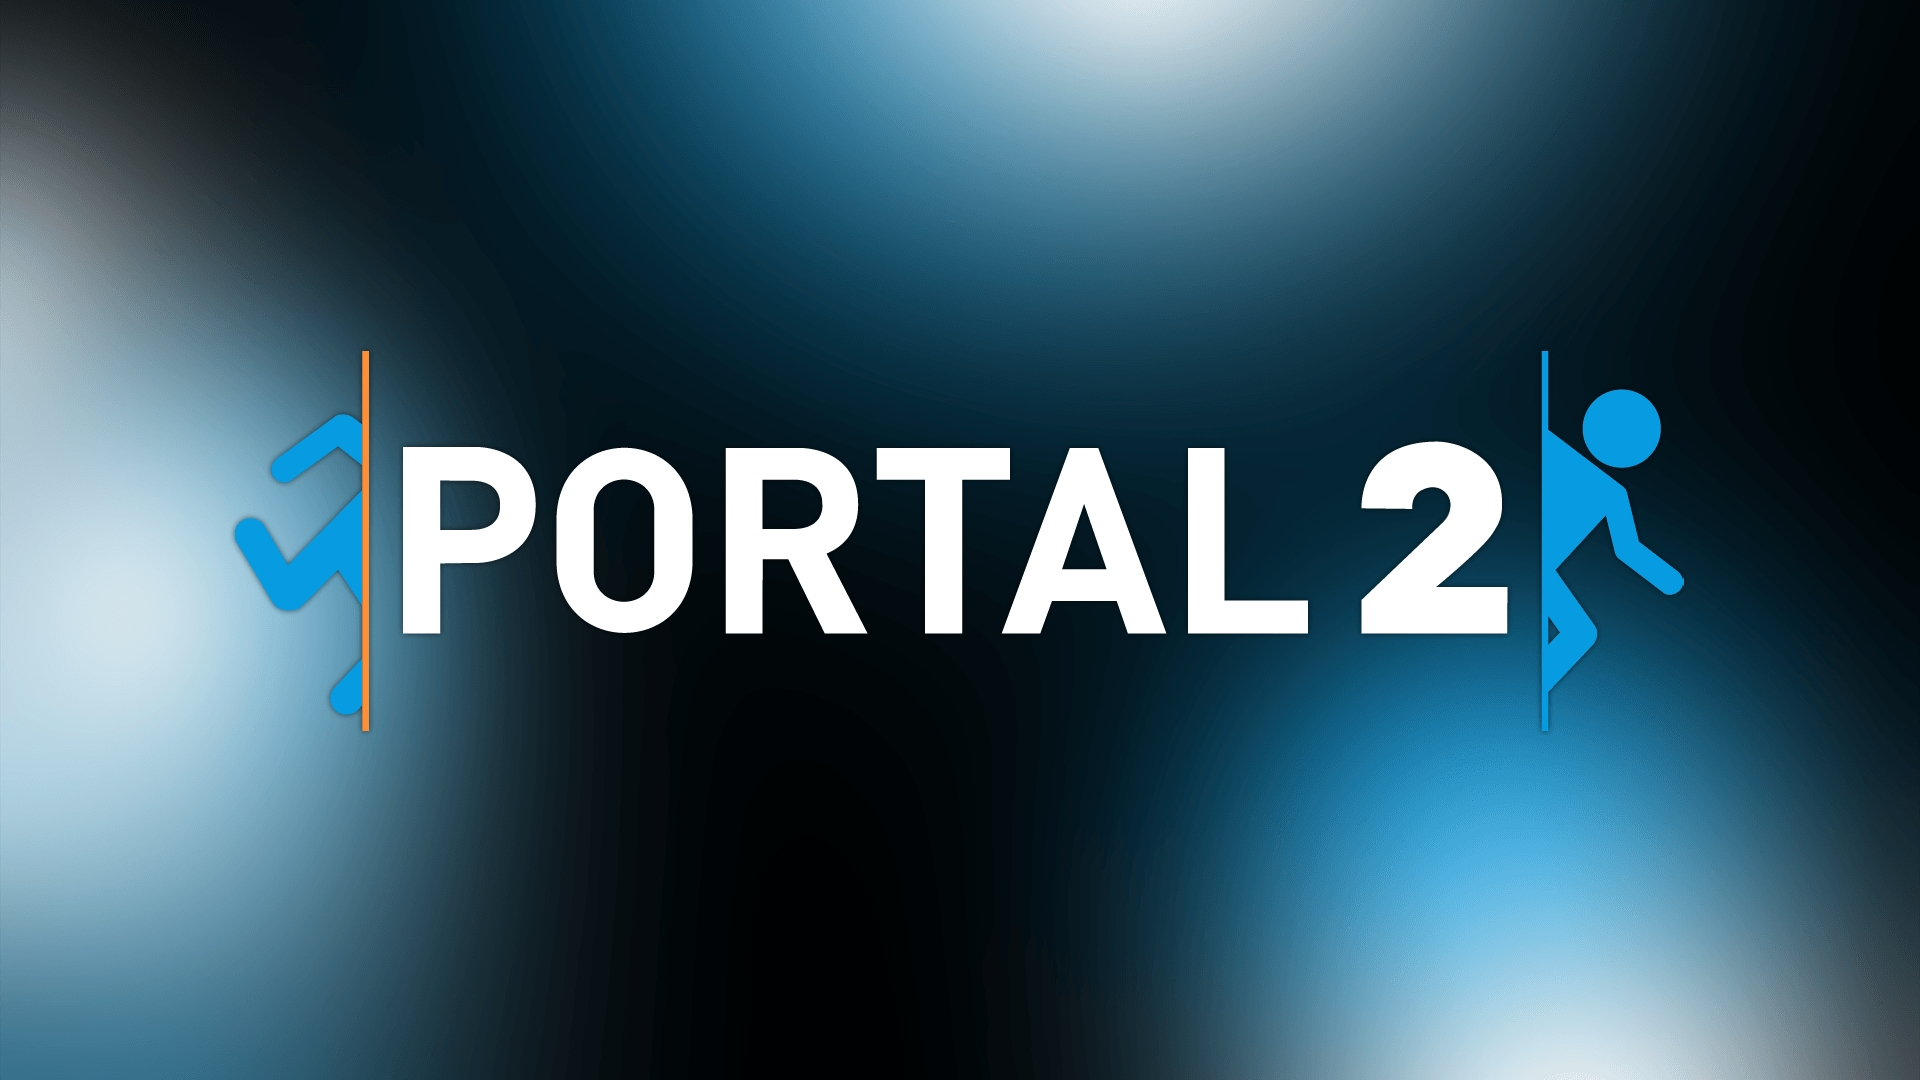 portal 2 wallpapers hd - wallpaper cave